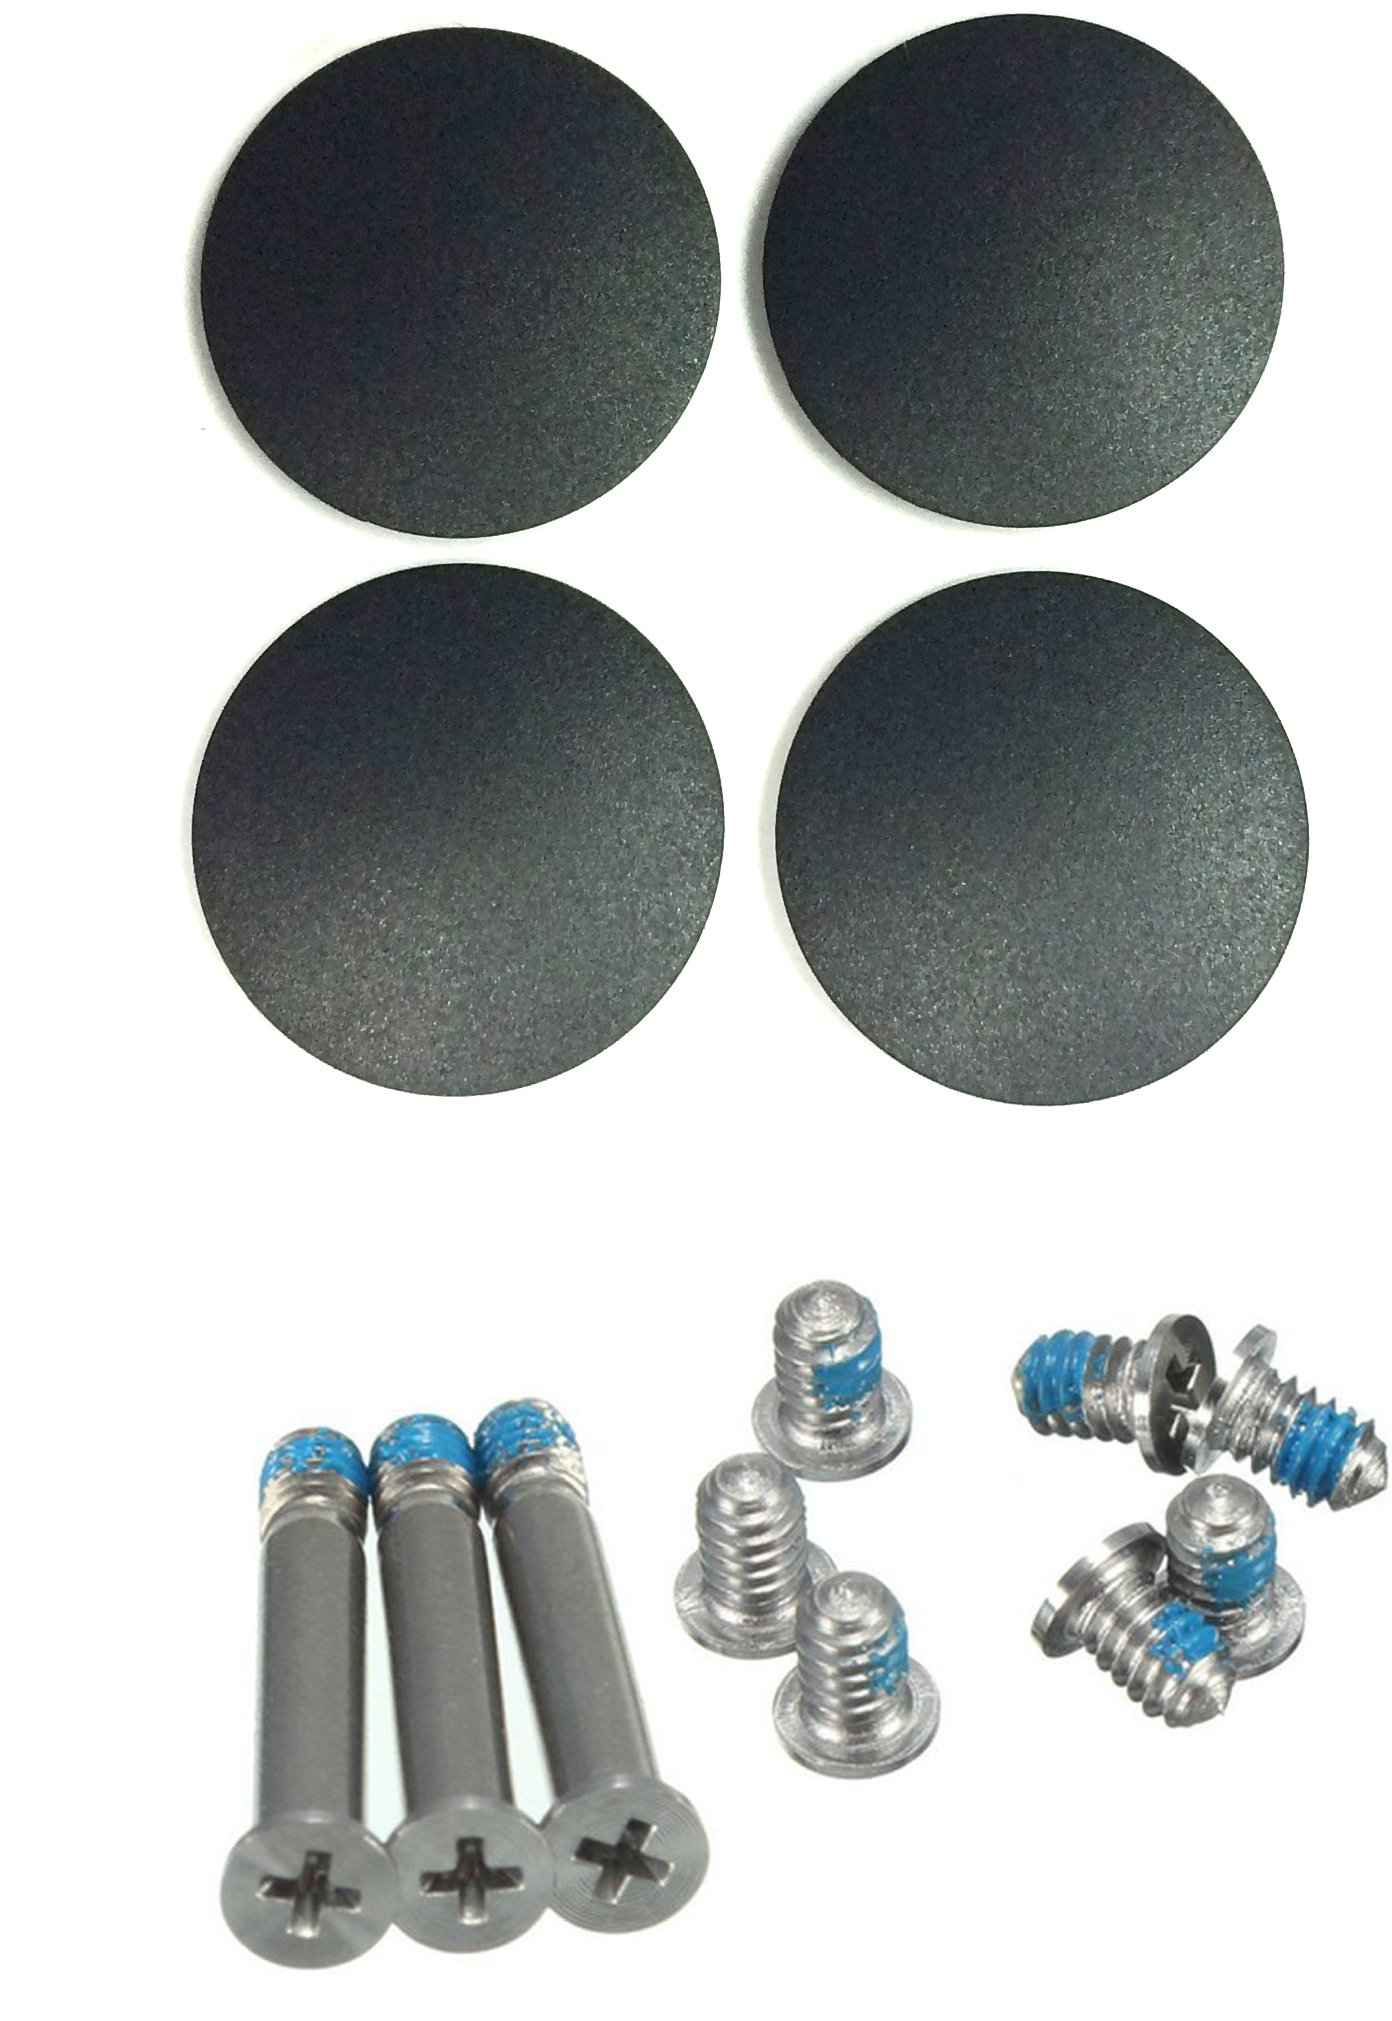 """ITTECC Repair Replacement Screws For Unibody Apple Macbook Pro A1278 A1286 13"""" 15"""" 17"""" 1 Sets of 10, 4 x Rubber Case Foot Feet For Macbook Pro A1278 A1286 A1297 2009 2010"""